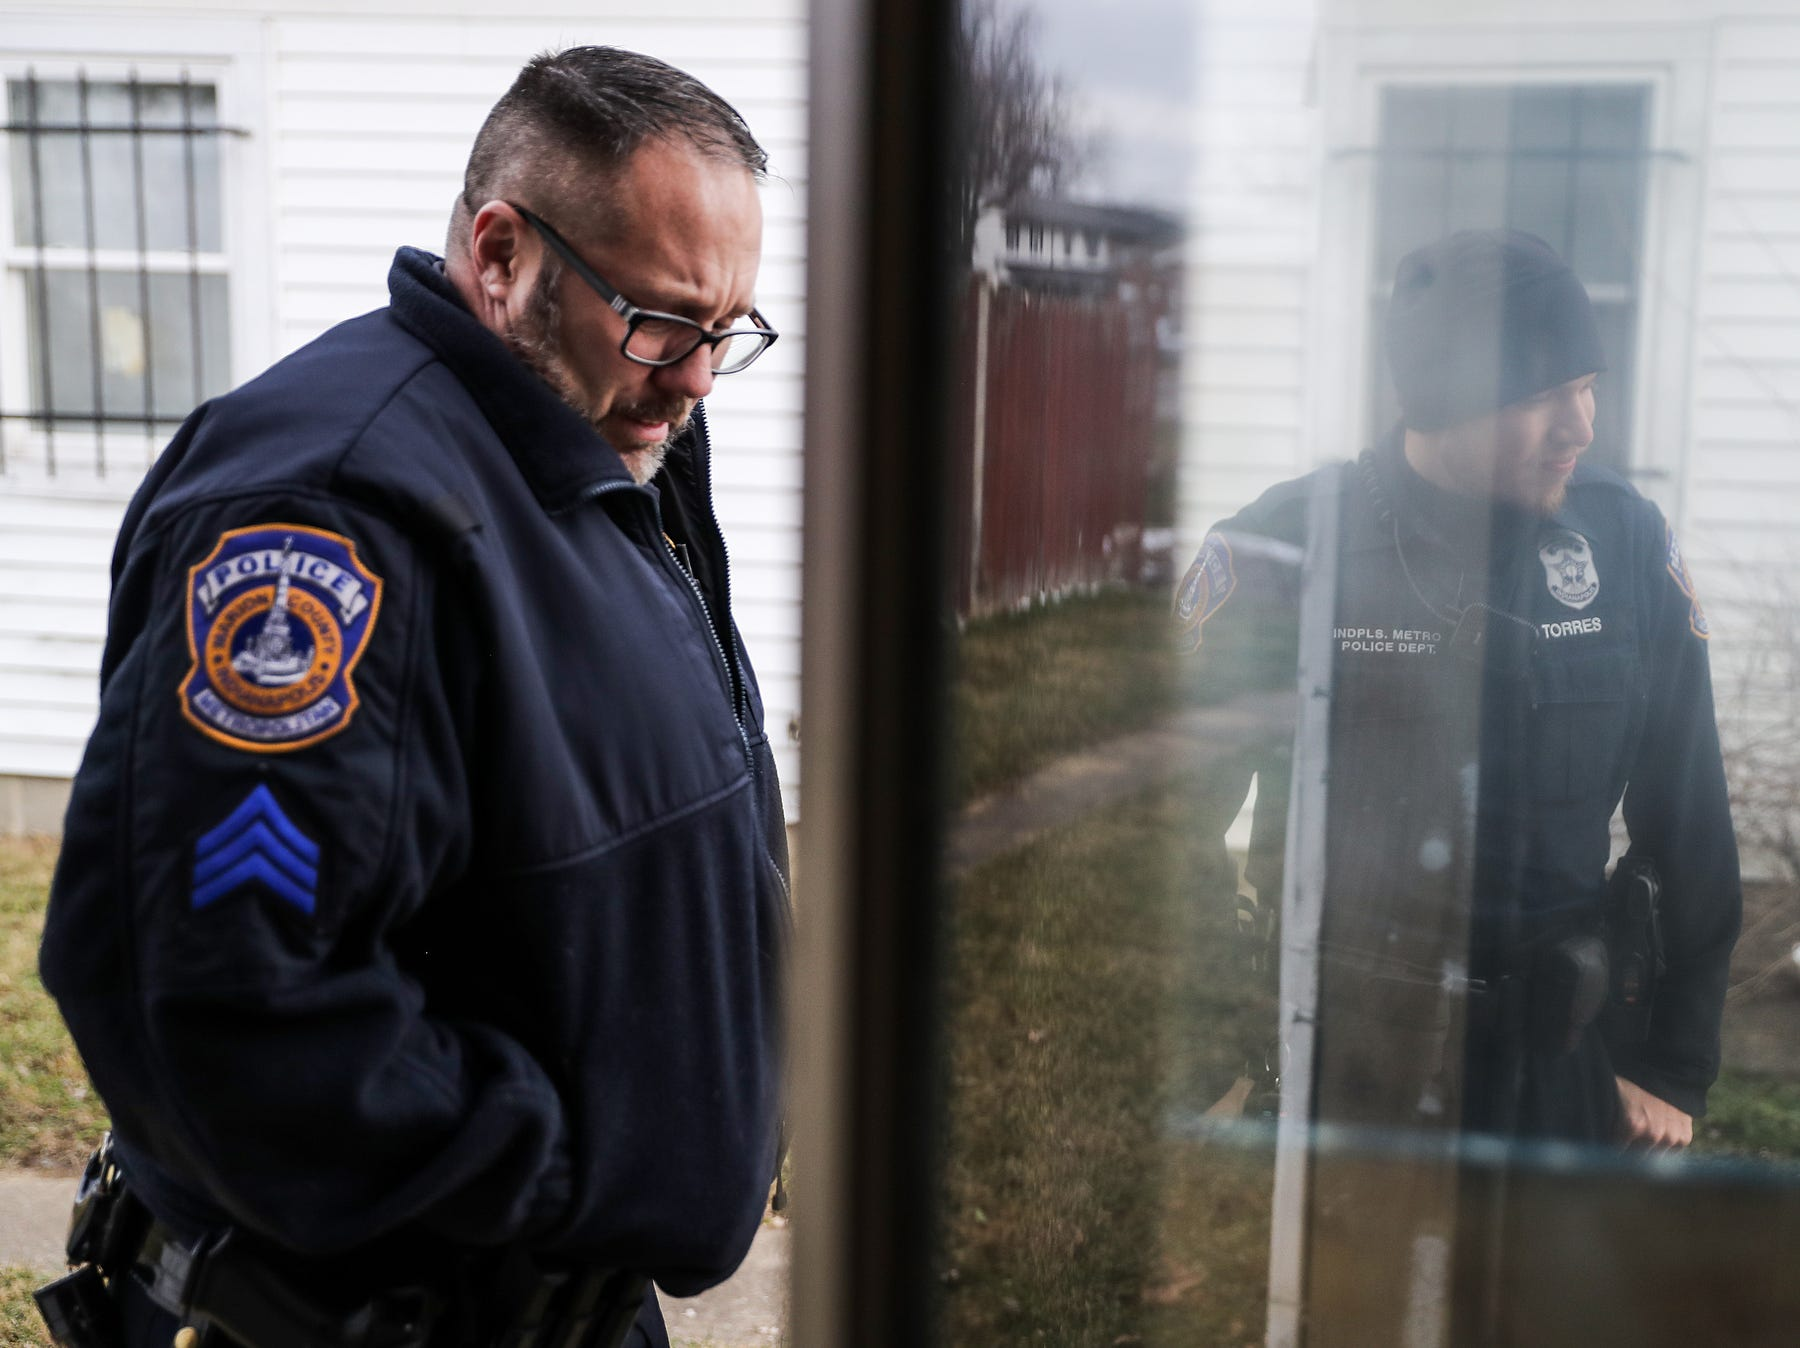 From left, Sgt. Aaron Sparks and IMPD officer Jeremy Torres stand outside of an abandoned unit on Essex Court where the body of Anthony Eldridge was found in June 2018, at the Towne and Terrace housing complex off of 42nd Street and Post Road, Saturday, Dec. 8, 2018. At one point, a camera was mounted on the back of the building to keep watch for police entering the complex.